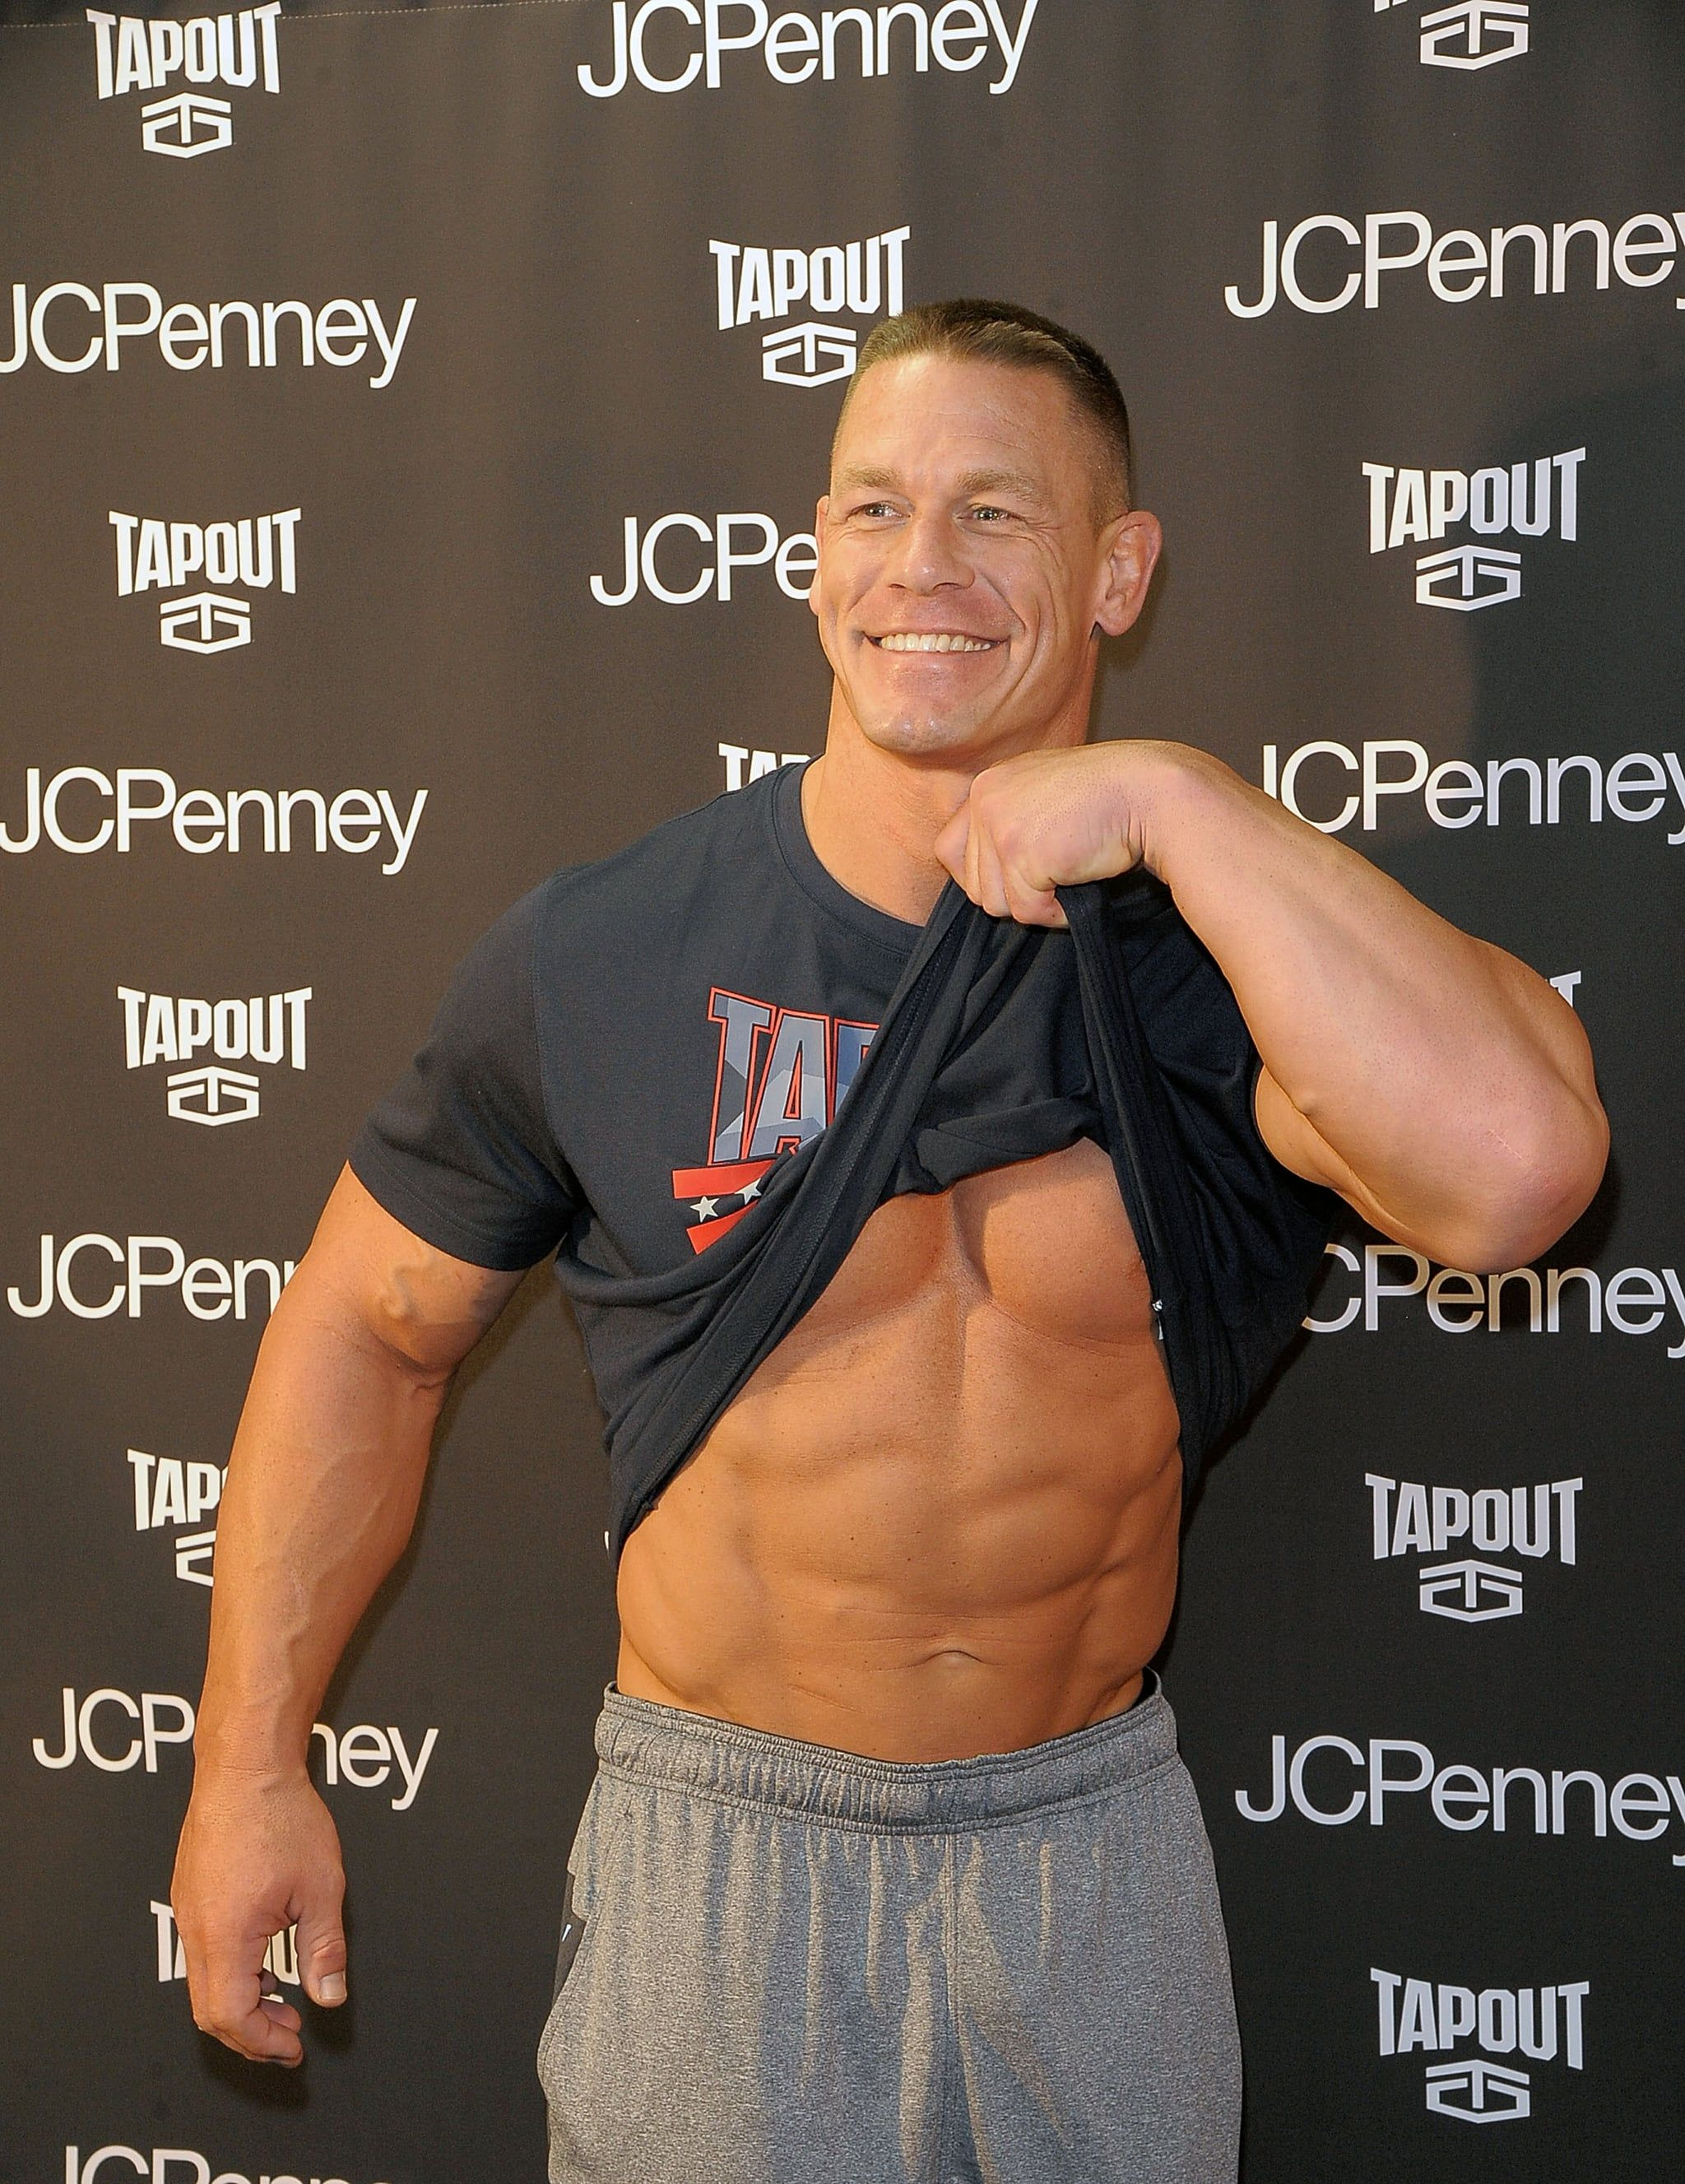 Bet You Can T Get Through These John Cena Pictures Without Drooling Just A Little John Cena Pictures John Cena Hot Wwe Superstar John Cena